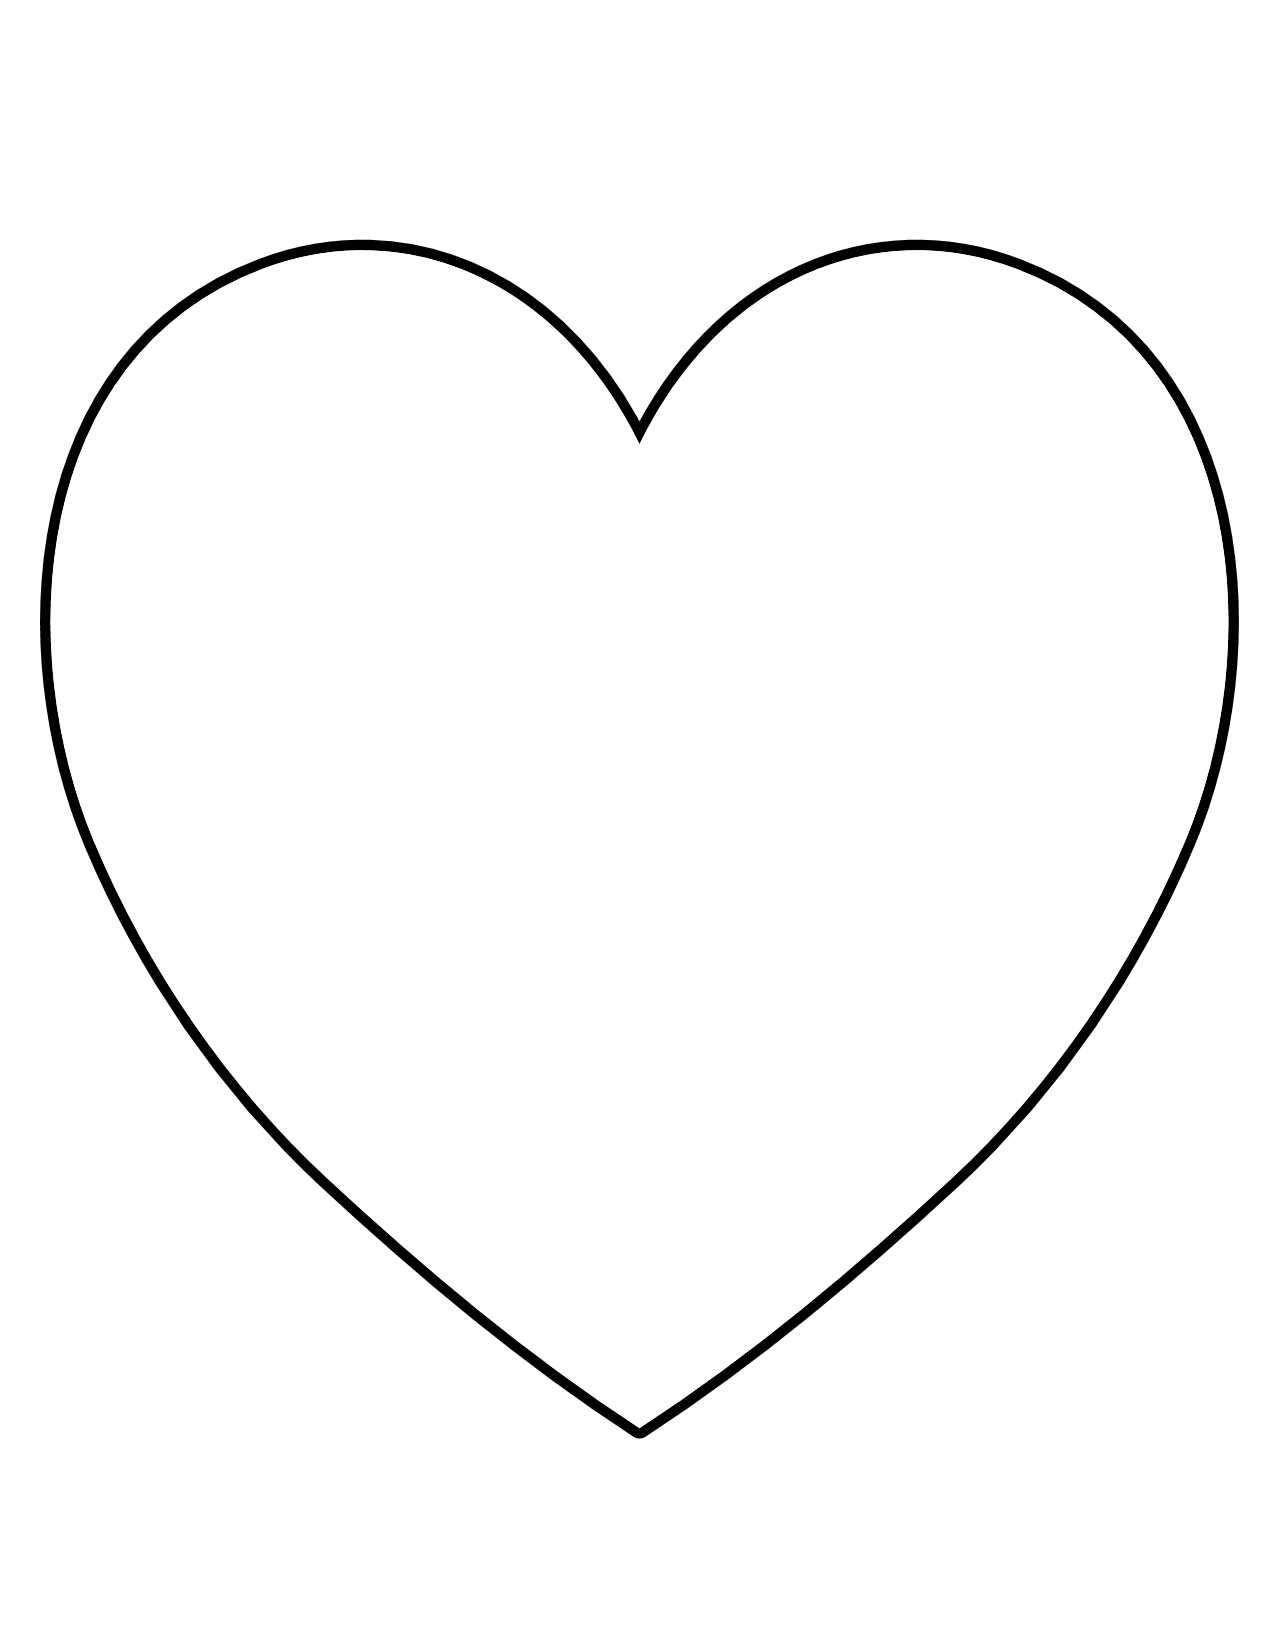 Heart Shaped Template Free - ClipArt Best